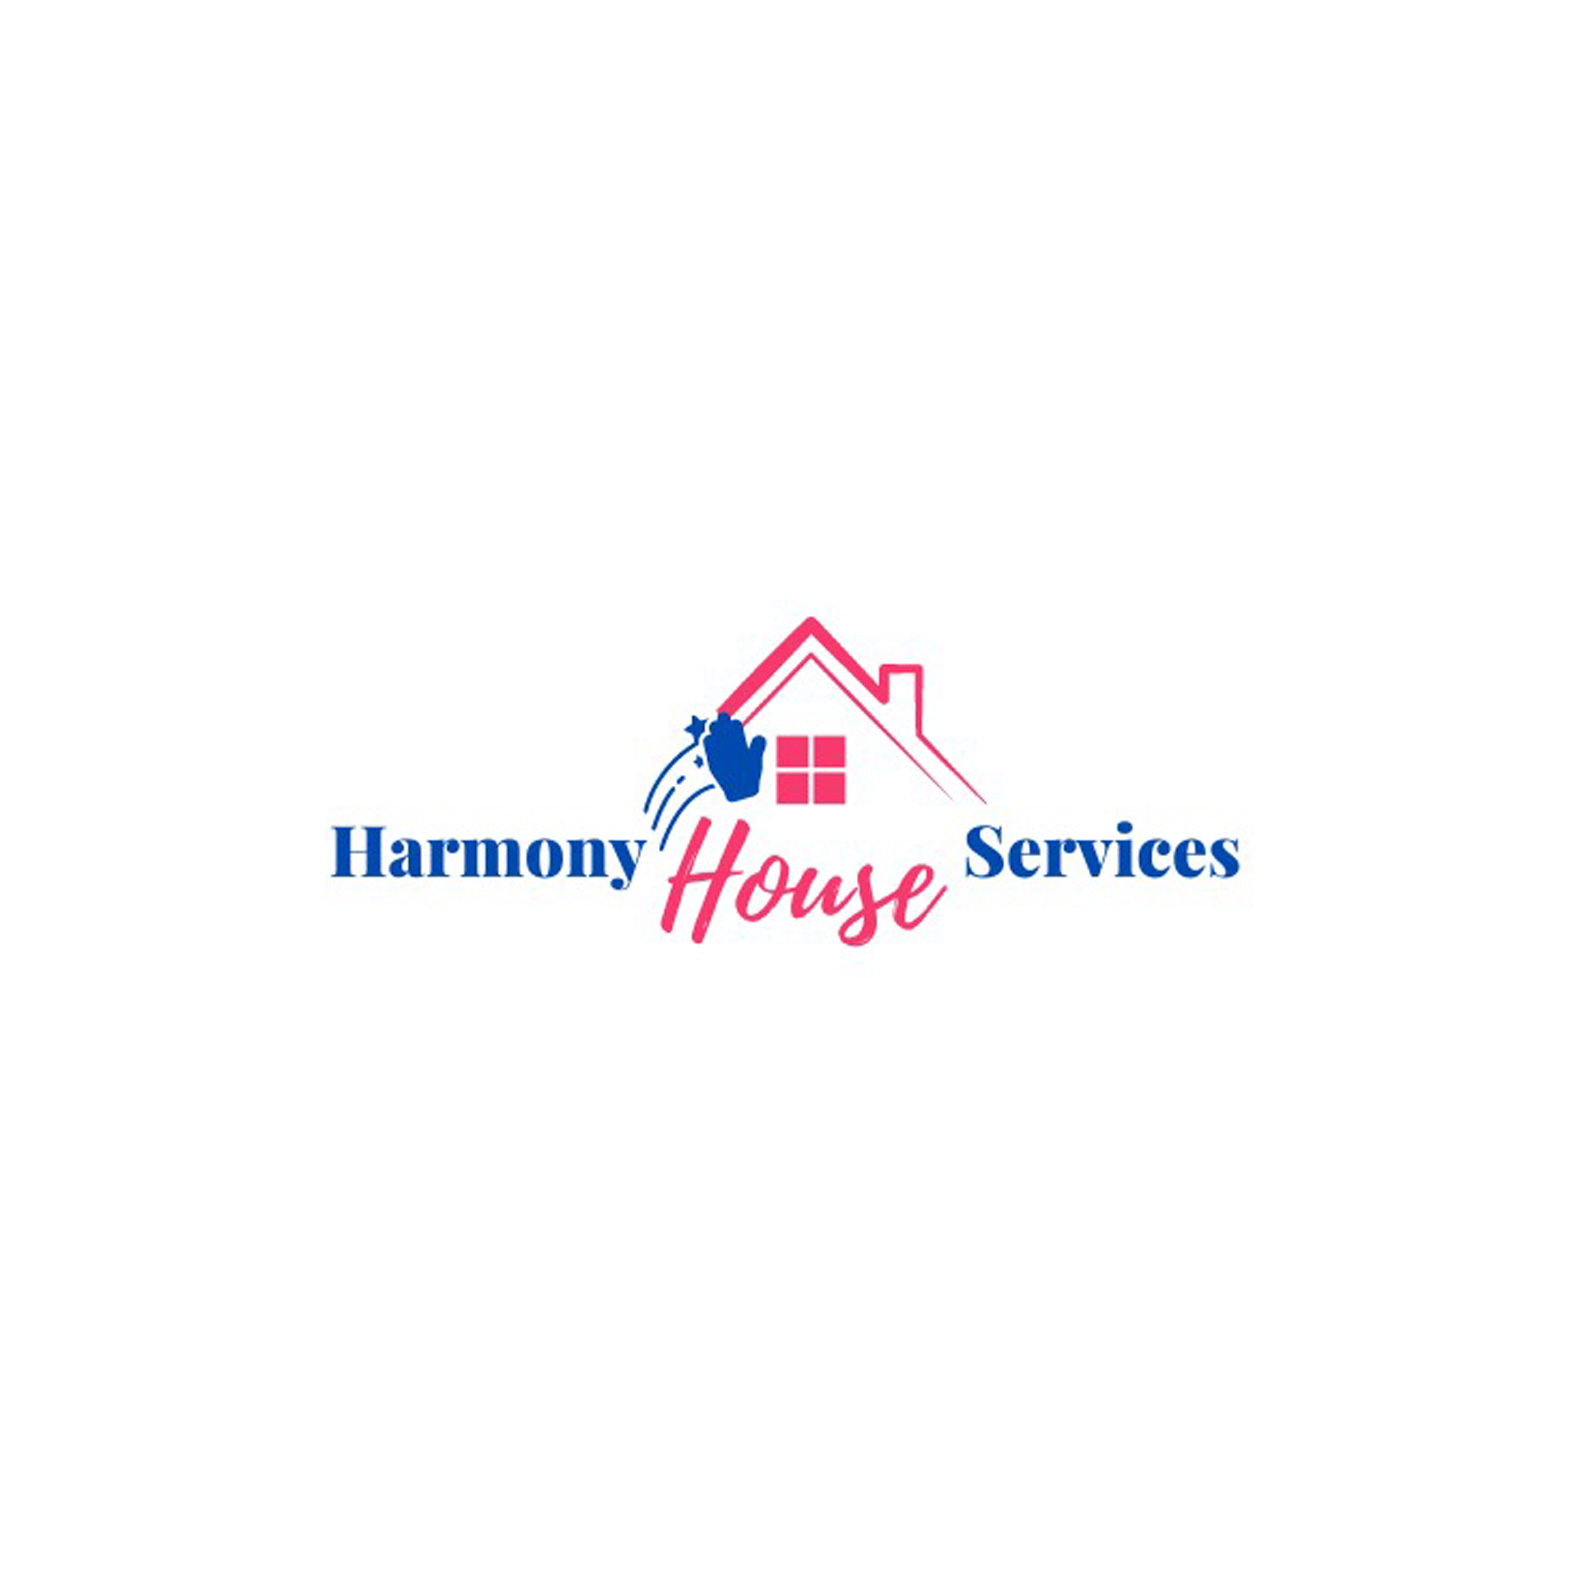 Harmony House Services